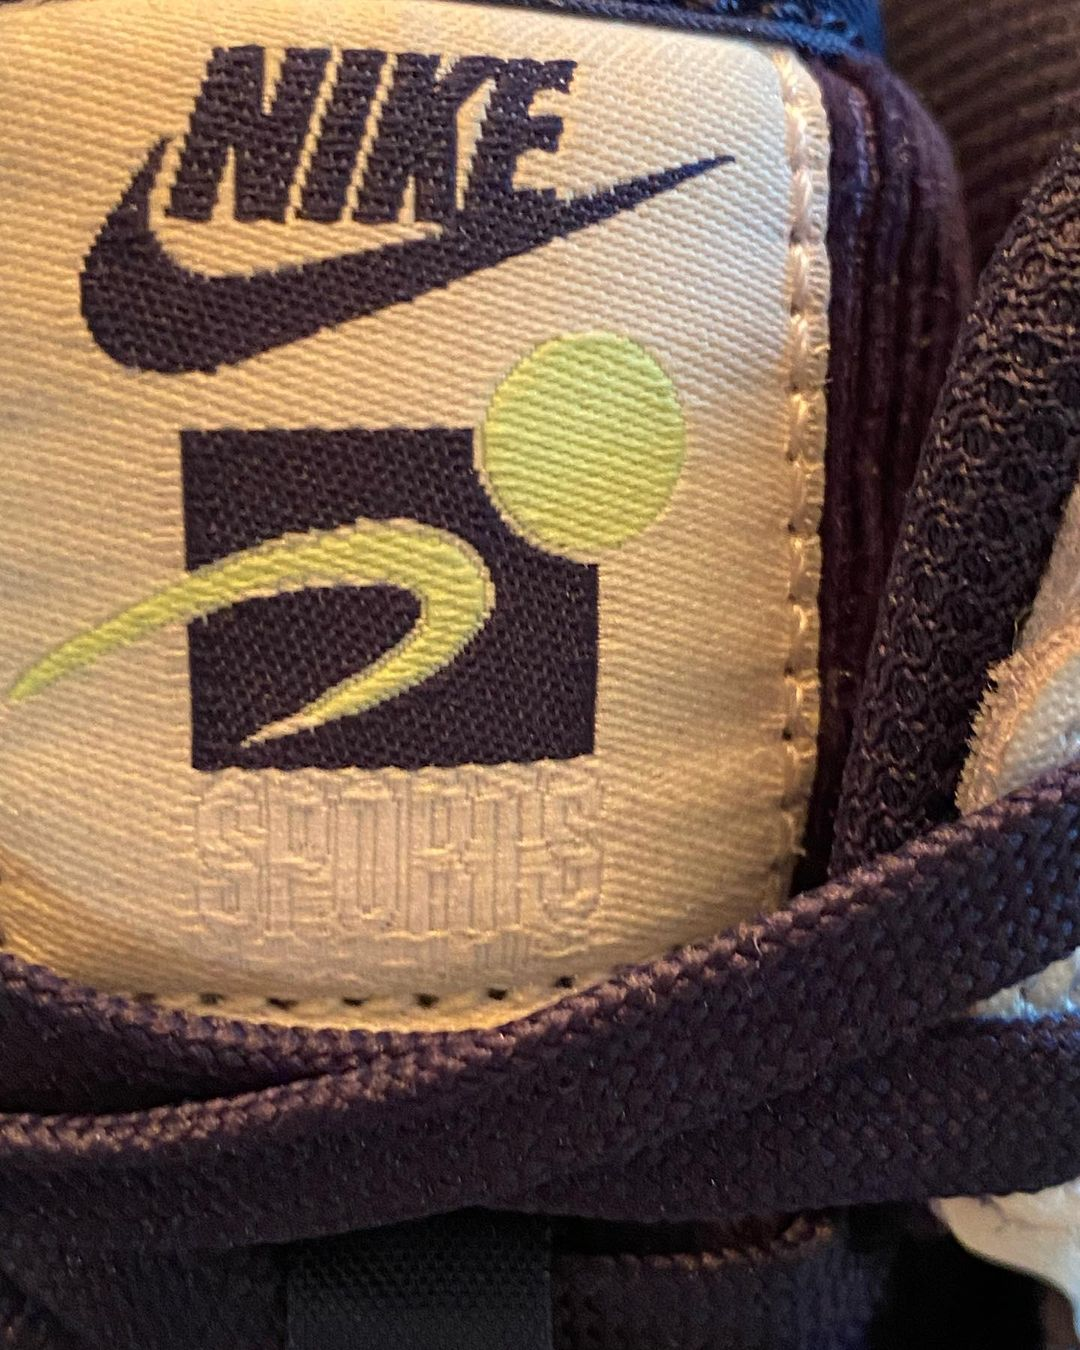 nike-dunk-high-official-basketball-dh0953-400-release-2021